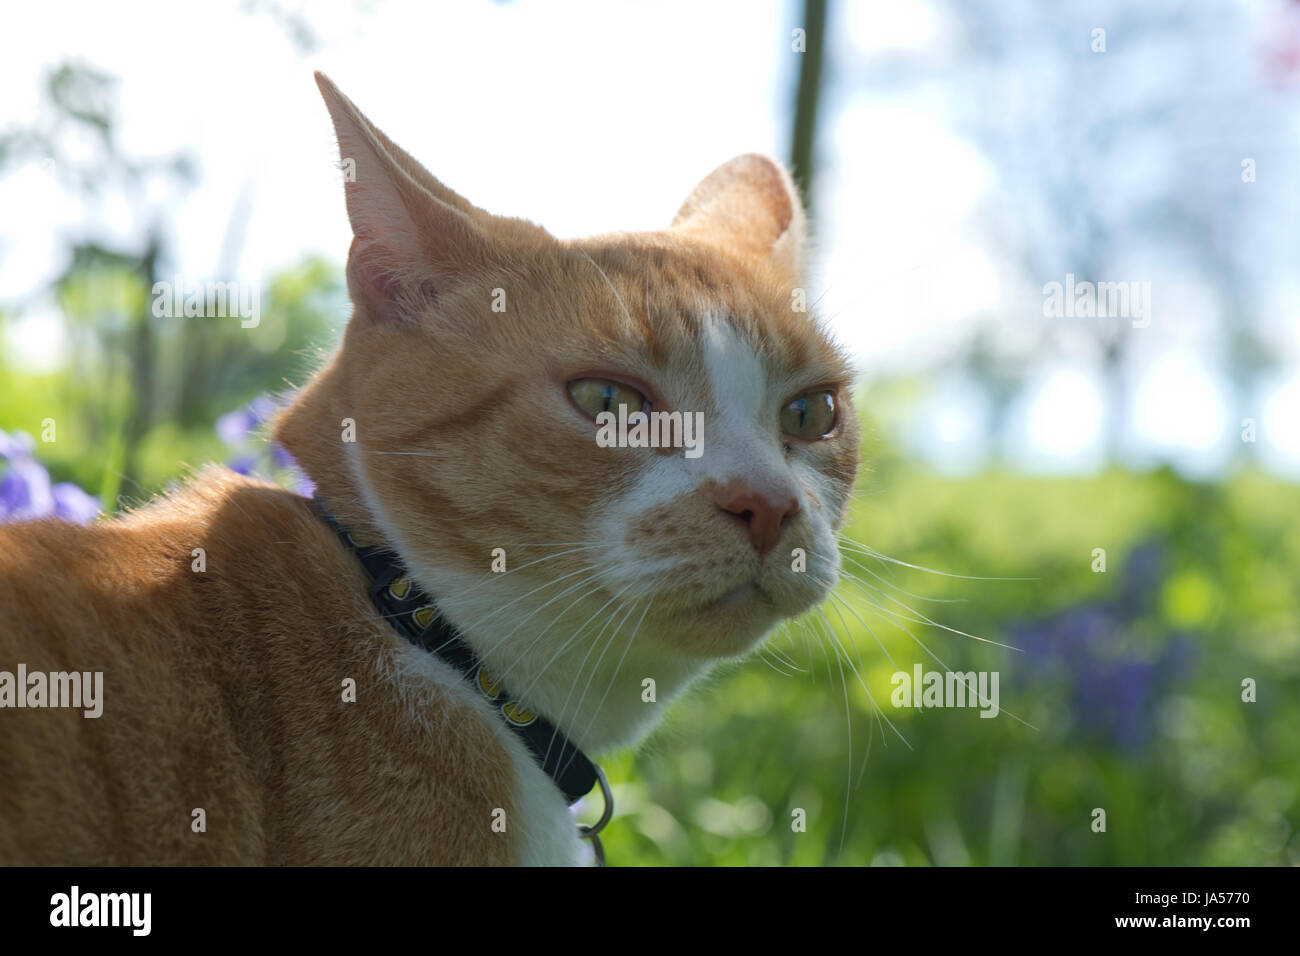 A ginger cat with her ears back looking alert with half closed ears ready to defend or attack - Stock Image